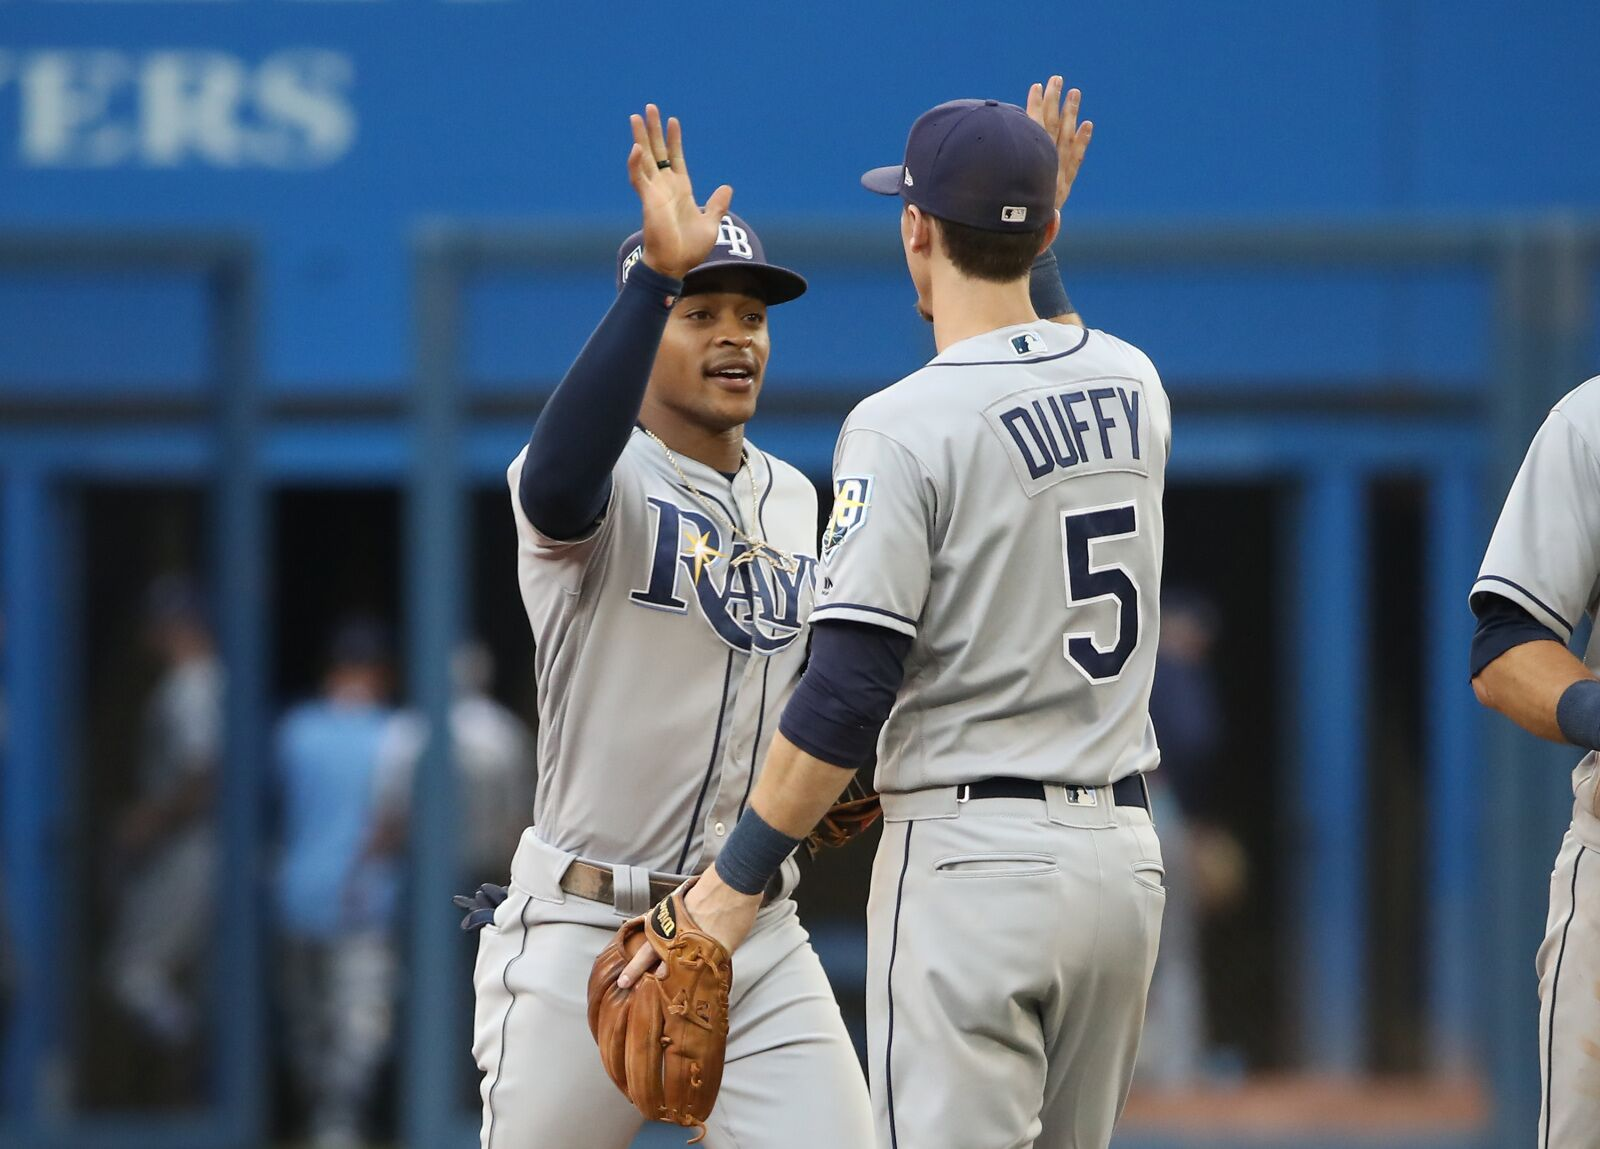 1b7f1a46c Boston Red Sox series with Tampa Bay Rays could be a trap